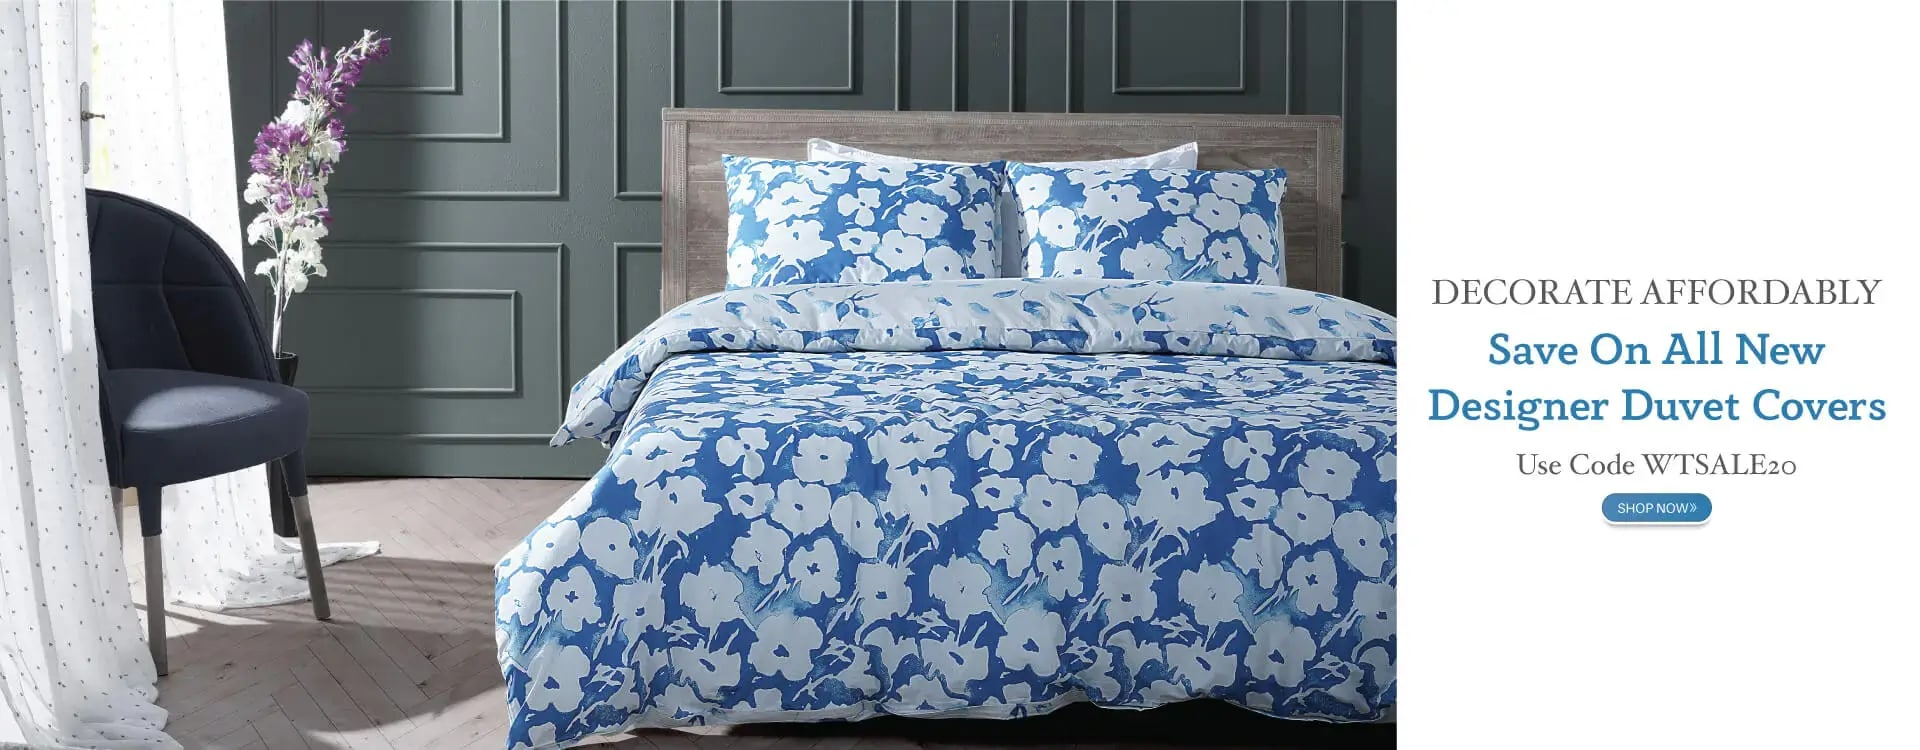 Decorate Affordably - On All Limited Edition Duvet Covers